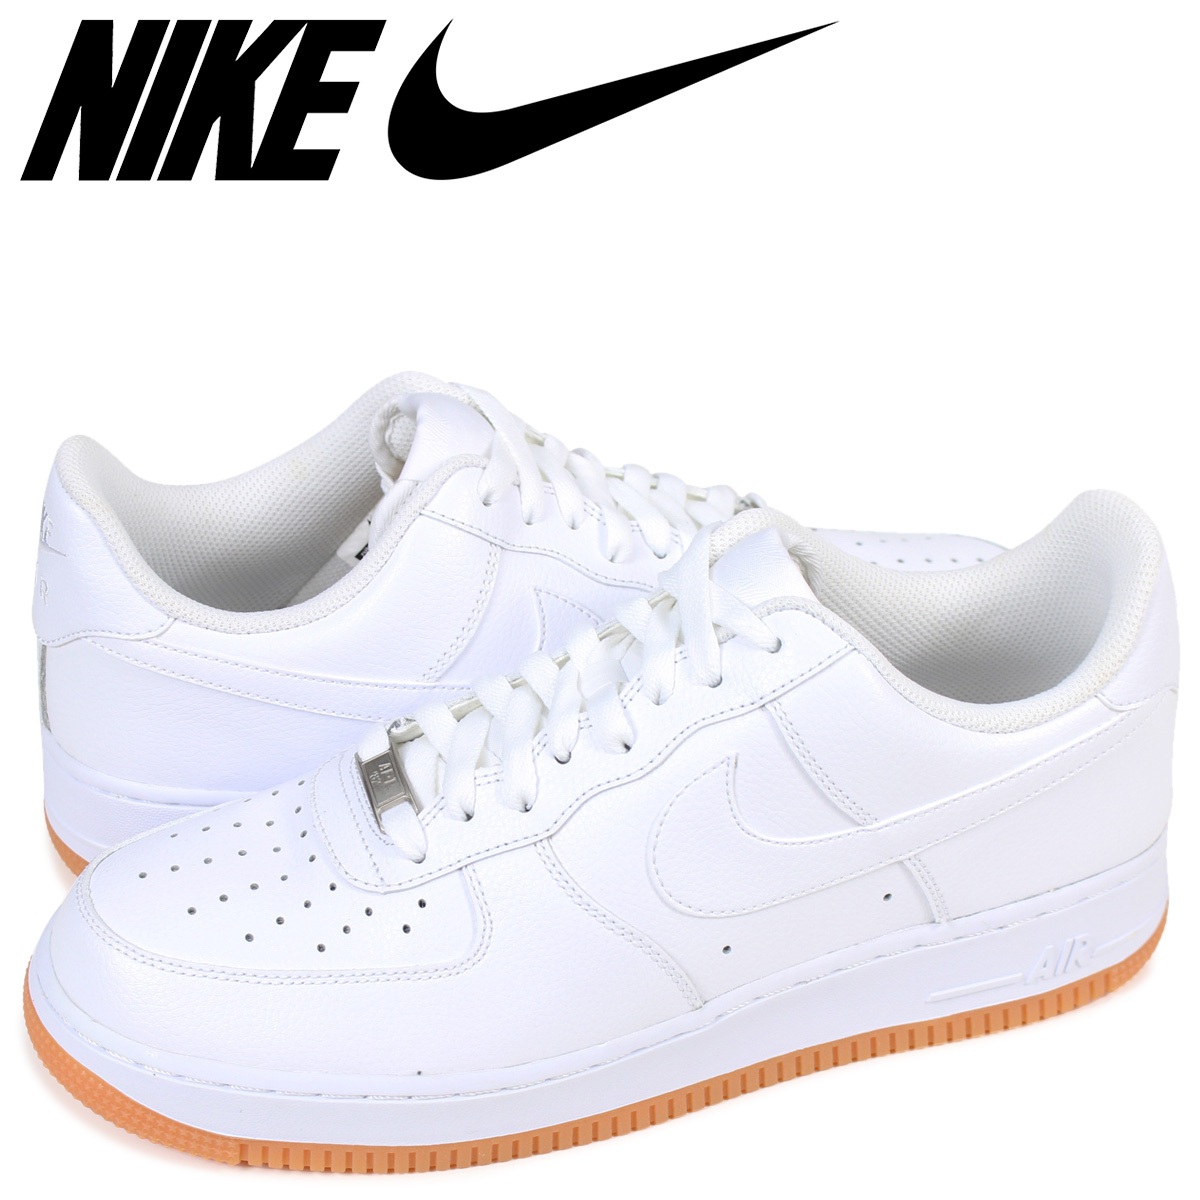 760249bc4c0b5e ALLSPORTS  NIKE AIR FORCE 1 LOW Nike air force 1 07 sneakers men white  488